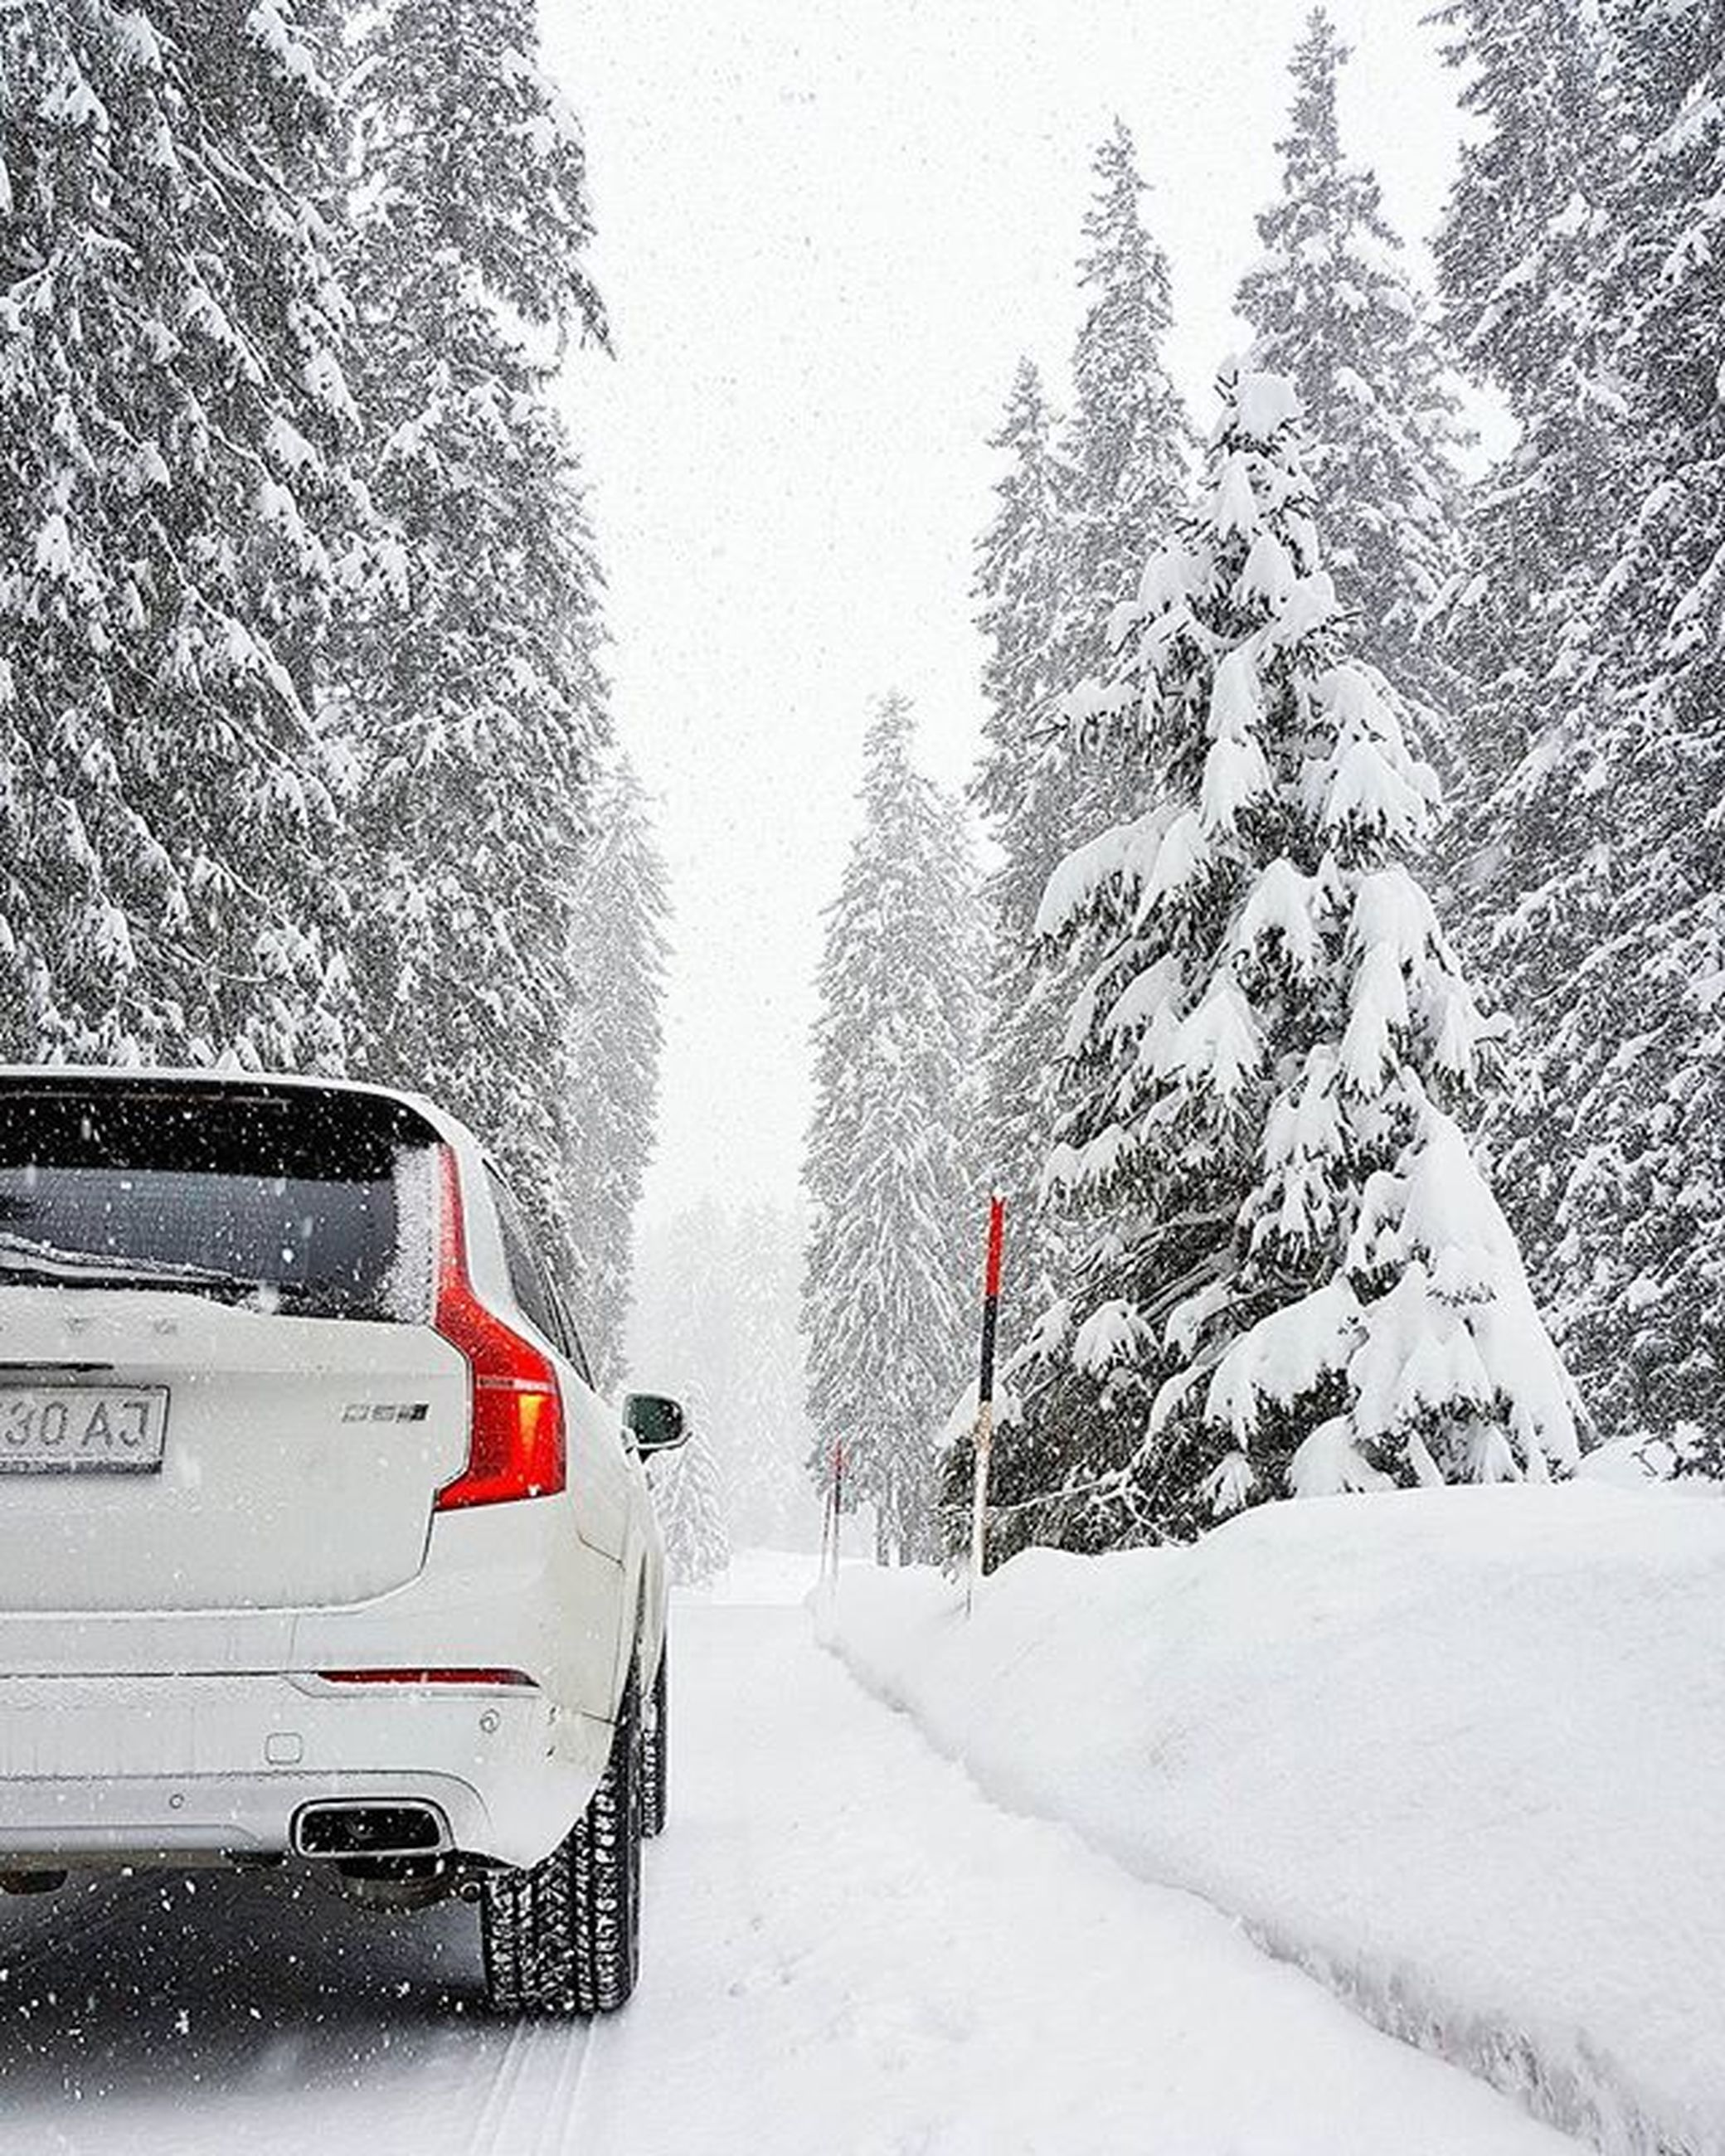 snow, winter, cold temperature, transportation, weather, season, mode of transport, car, land vehicle, road, tree, street, covering, white color, nature, day, travel, frozen, the way forward, outdoors